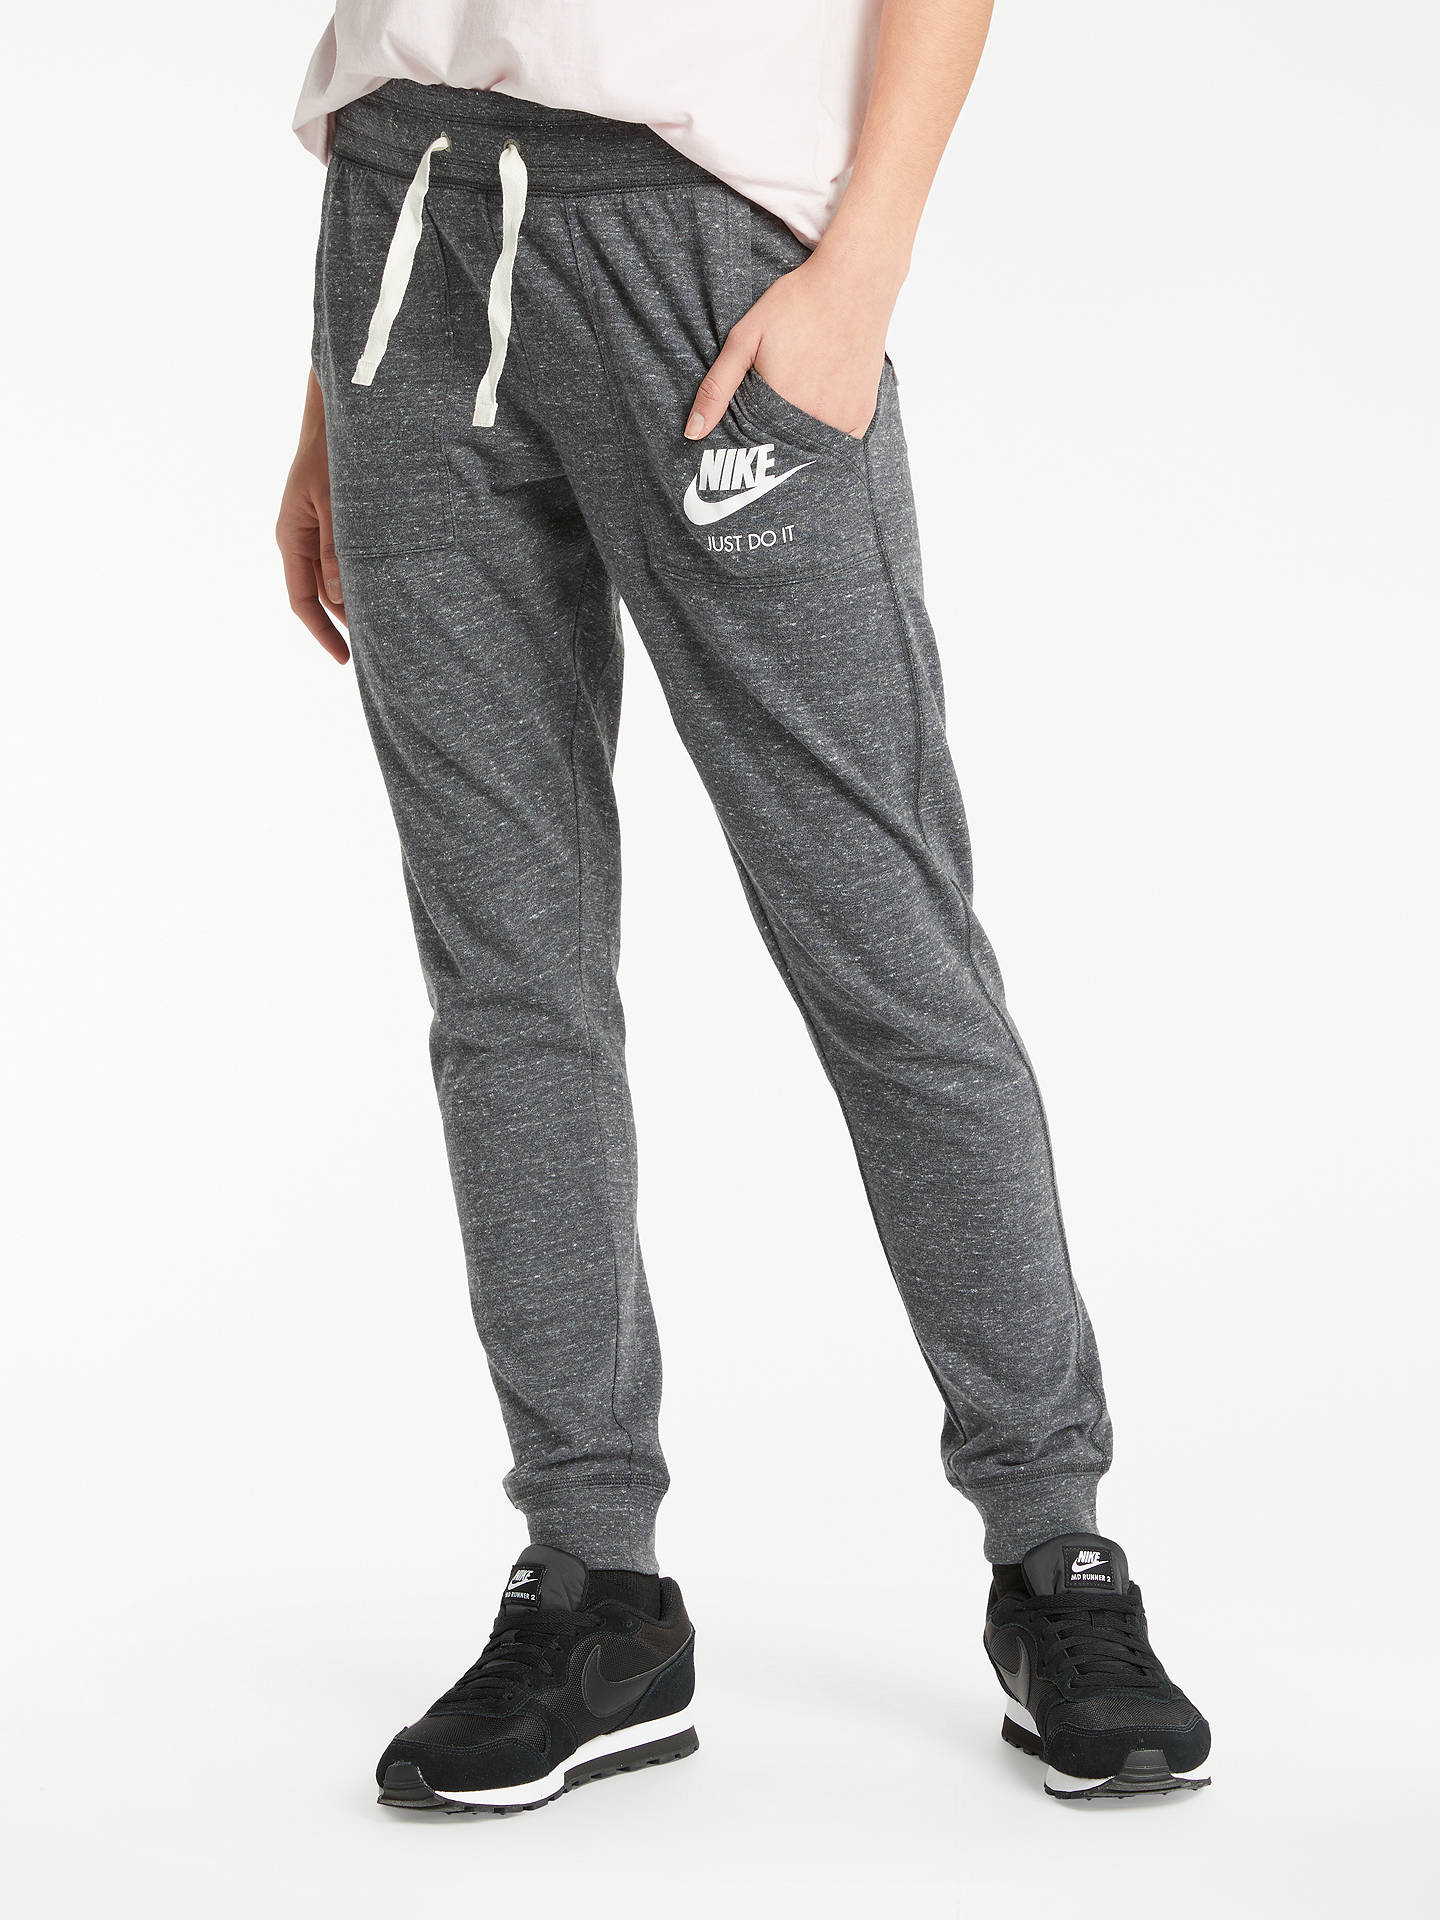 BuyNike NSW Cotton Tracksuit Bottoms, Black, XS Online at johnlewis.com